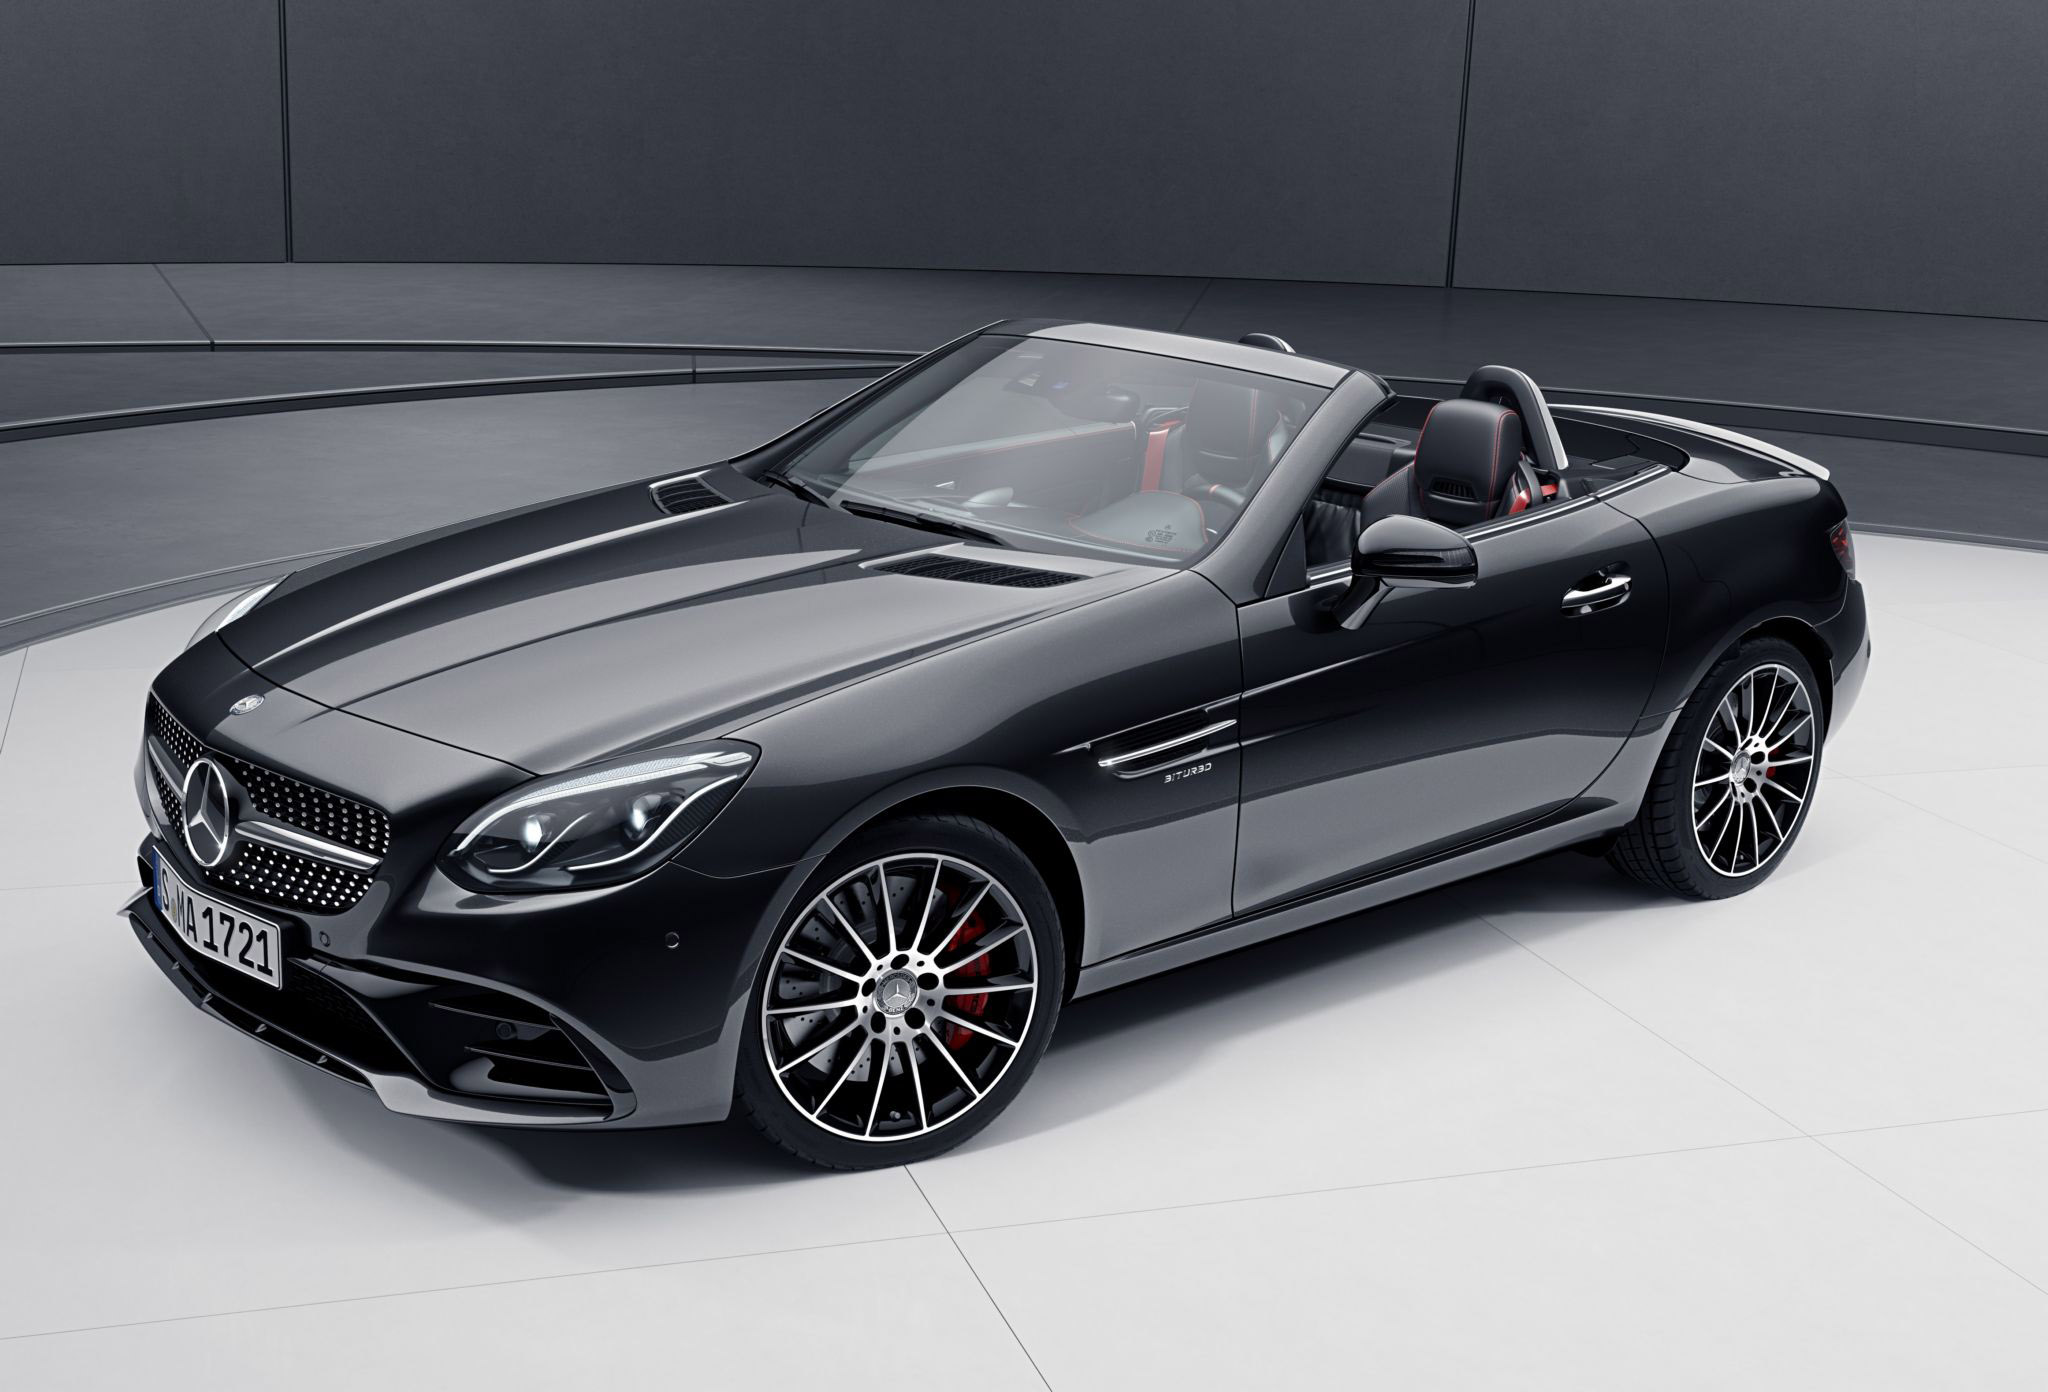 Mercedes benz slc gets new night package for Slc mercedes benz